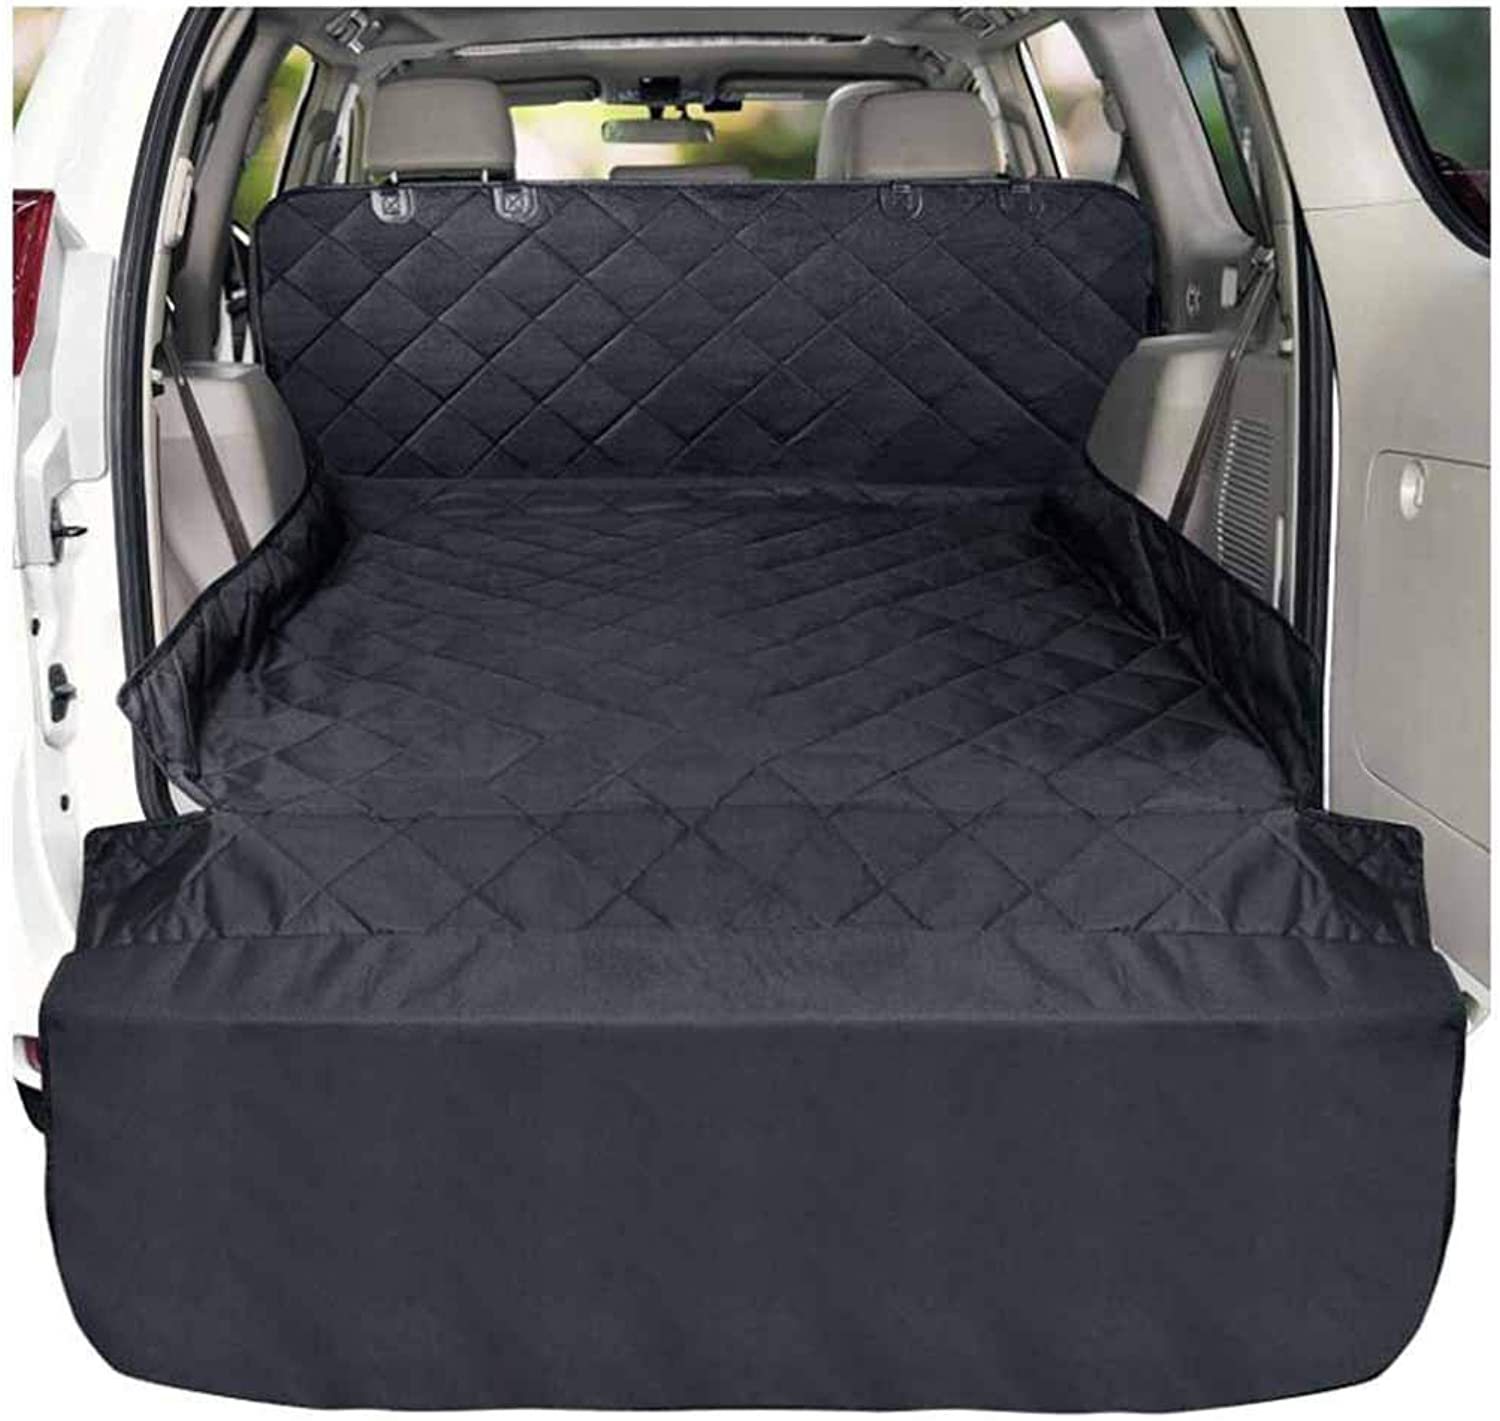 QRFDIAN Pet car trunk mat   waterproof car mat dog travel cushion   dog car seat cover   waterproof dog hammock rear seat predection pad   for cars SUV truck outdoor travel Dog Cargo Cover Black Dog C